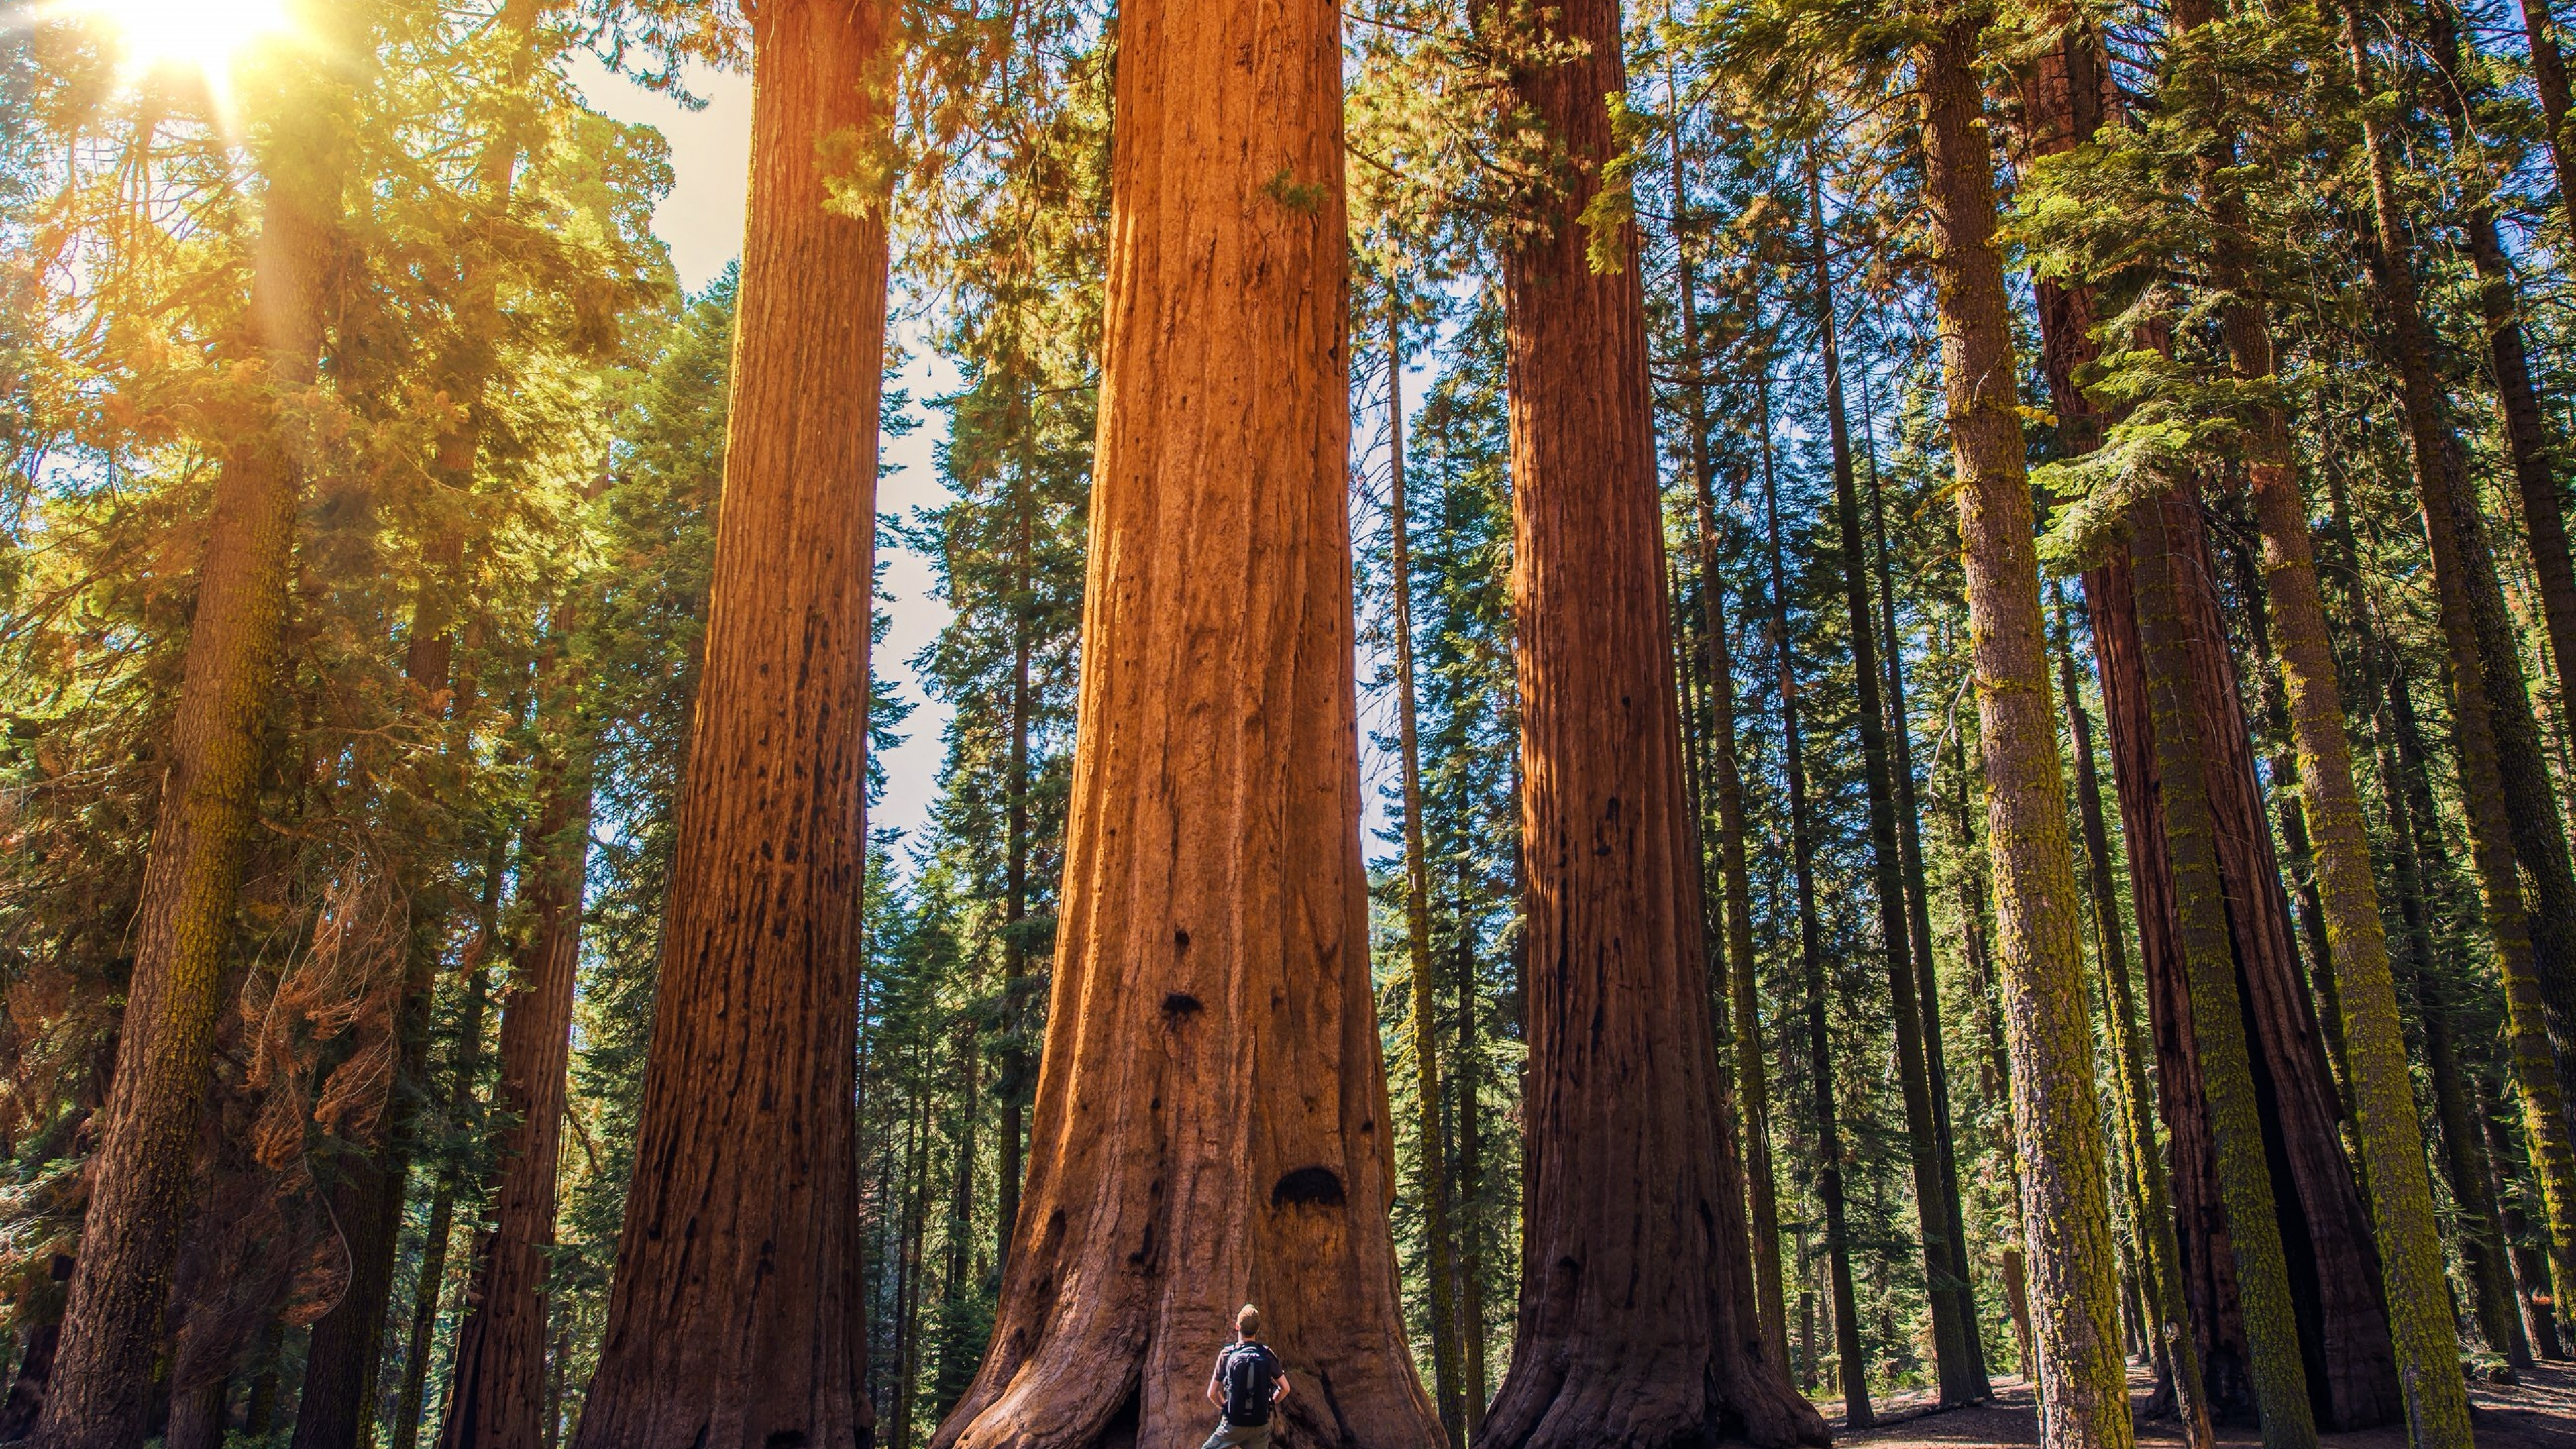 Man dwarfed by giant sequoia trees